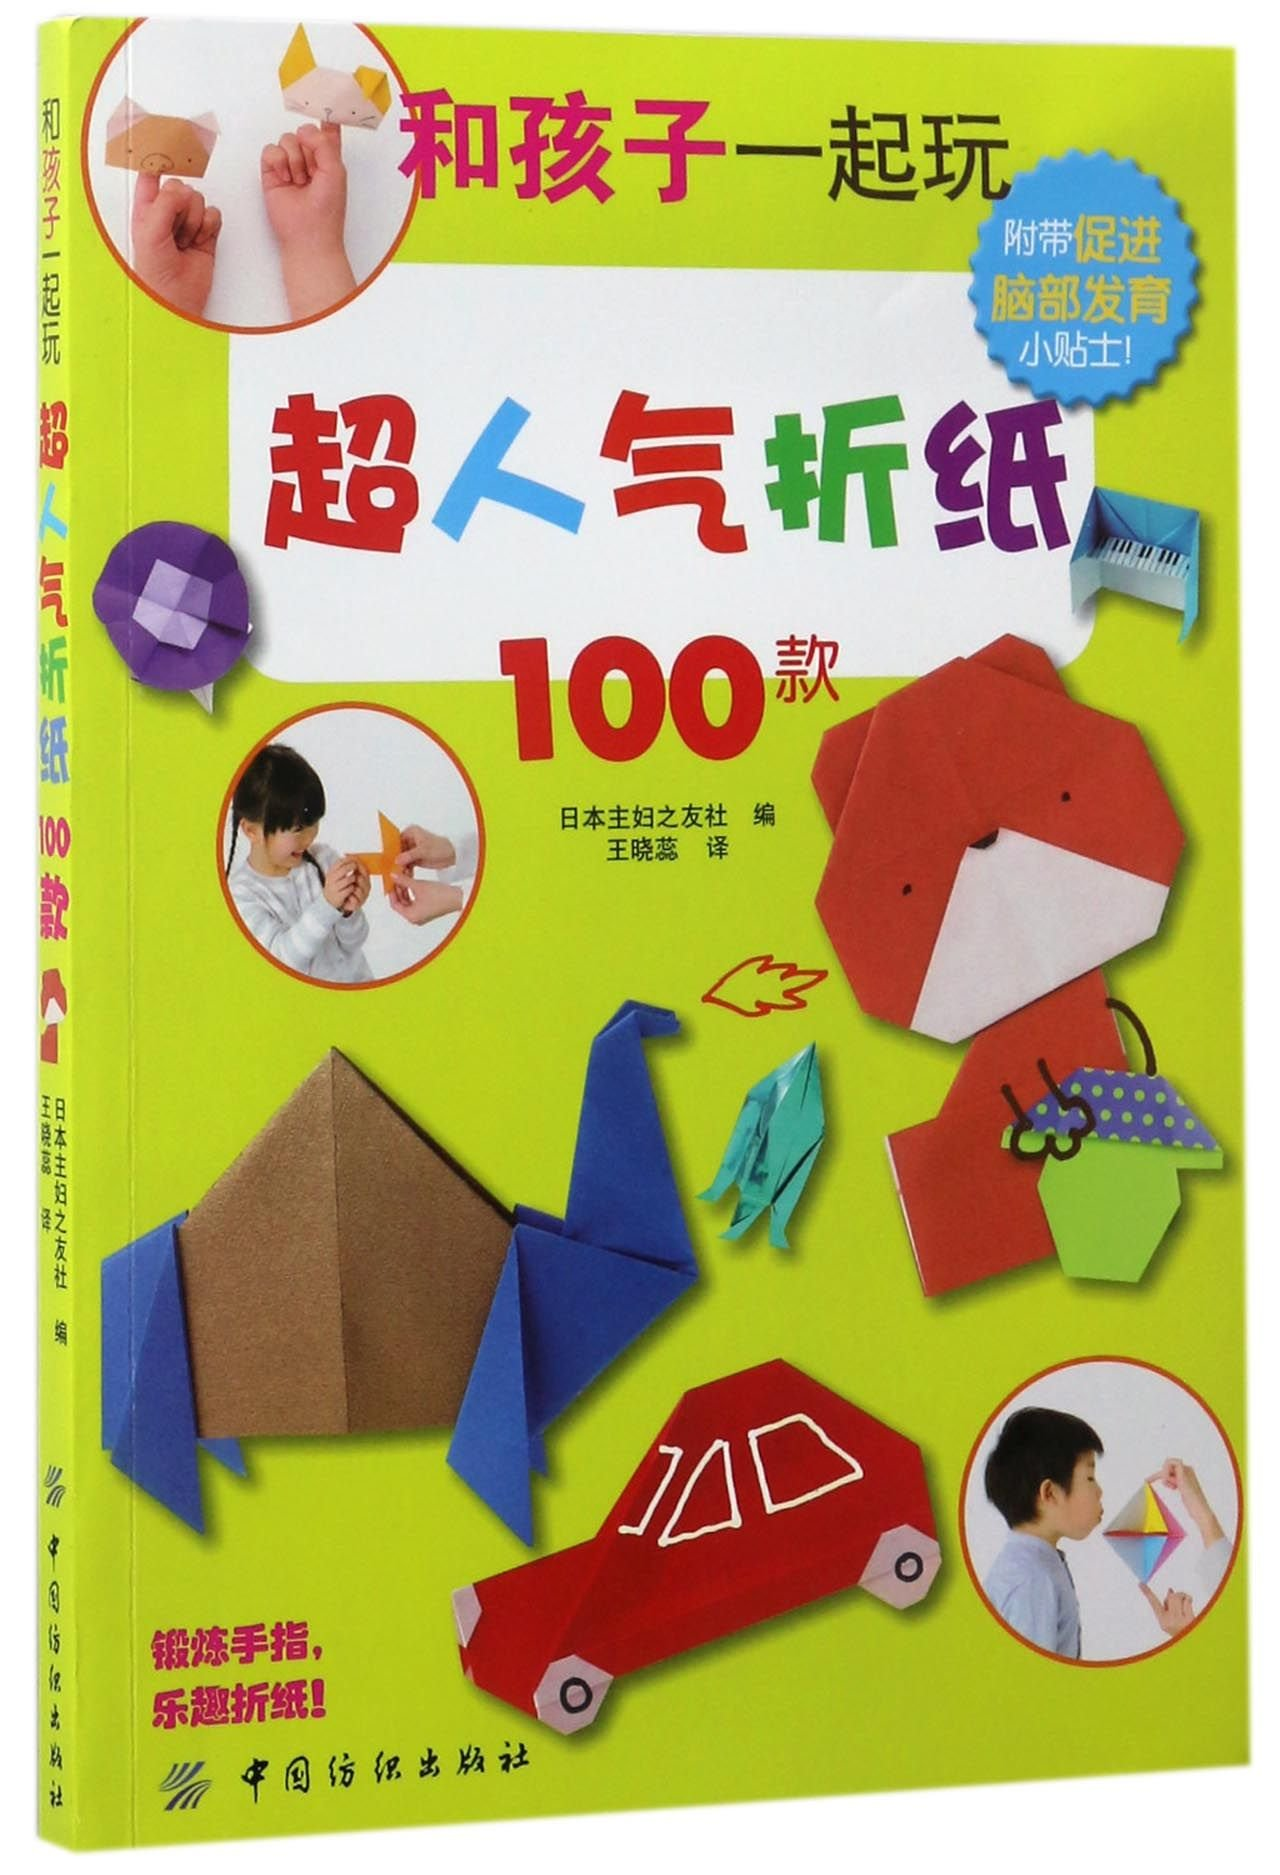 Download 100 Super Popular Paper Foldings (Chinese Edition) ebook